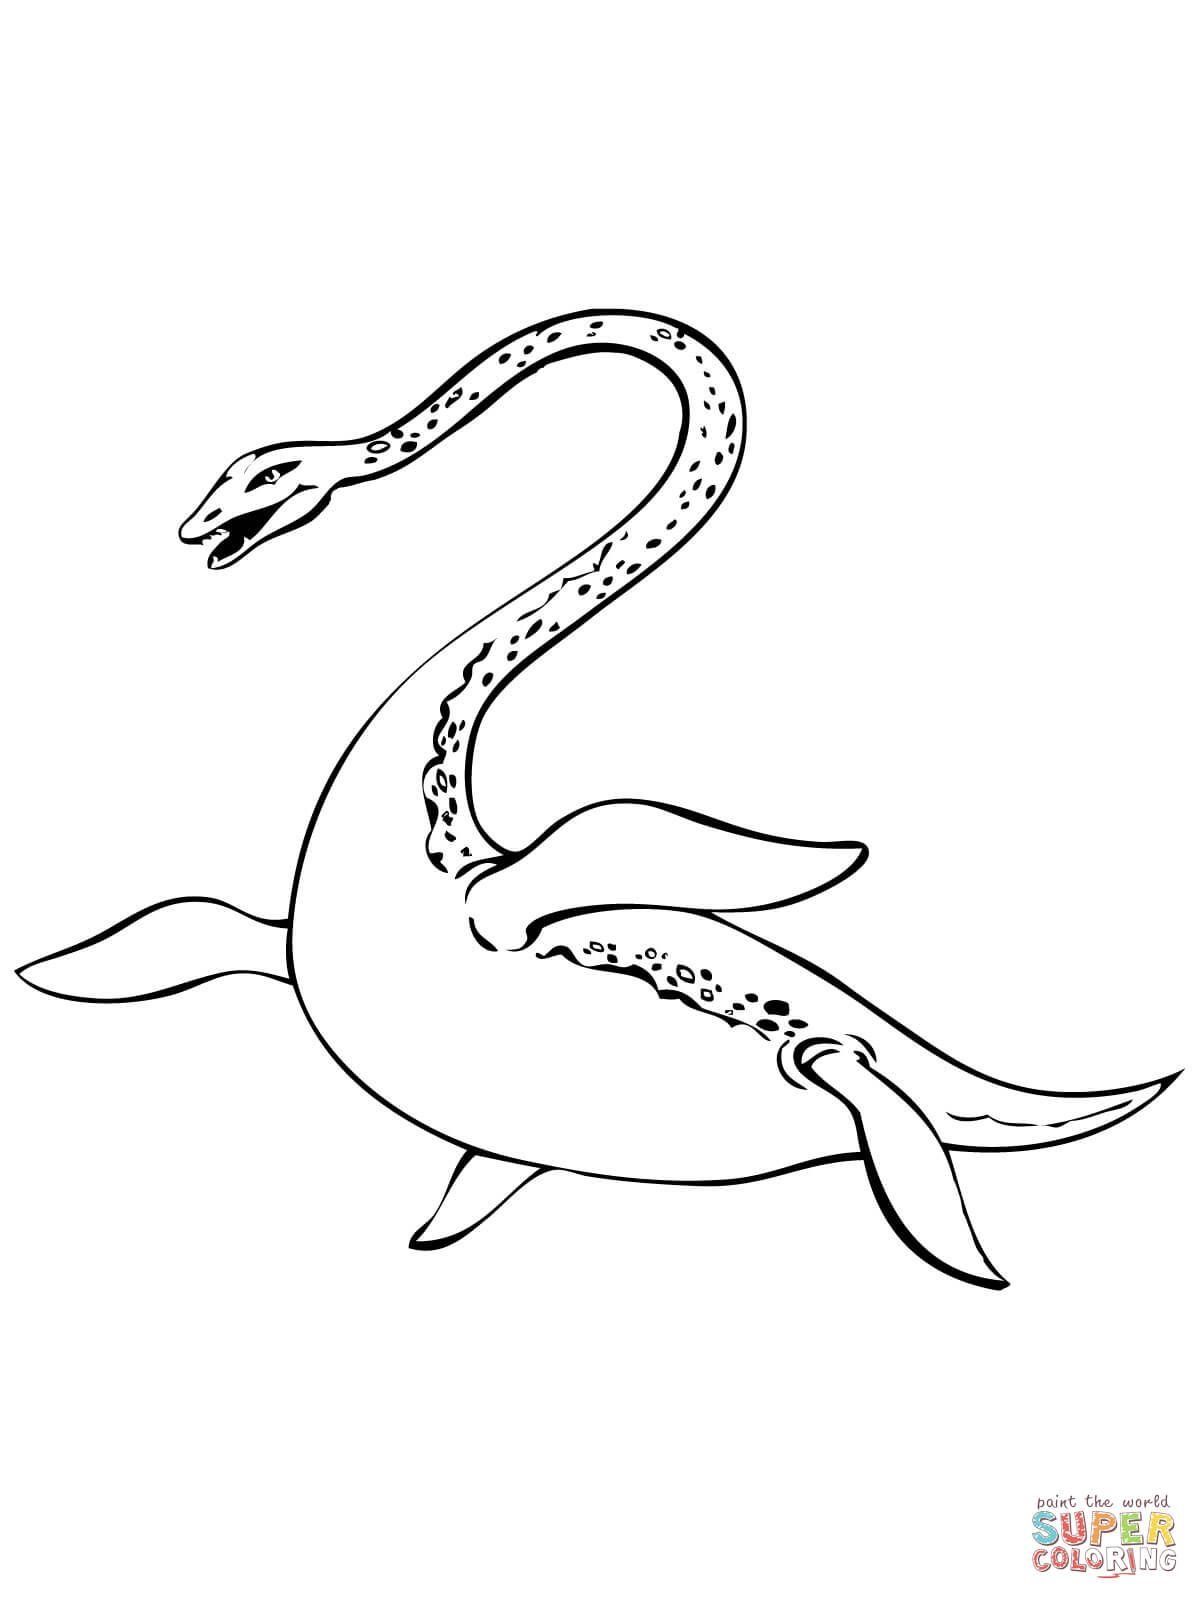 Nessie Loch Ness Lake Monster Coloring Page Free Printable